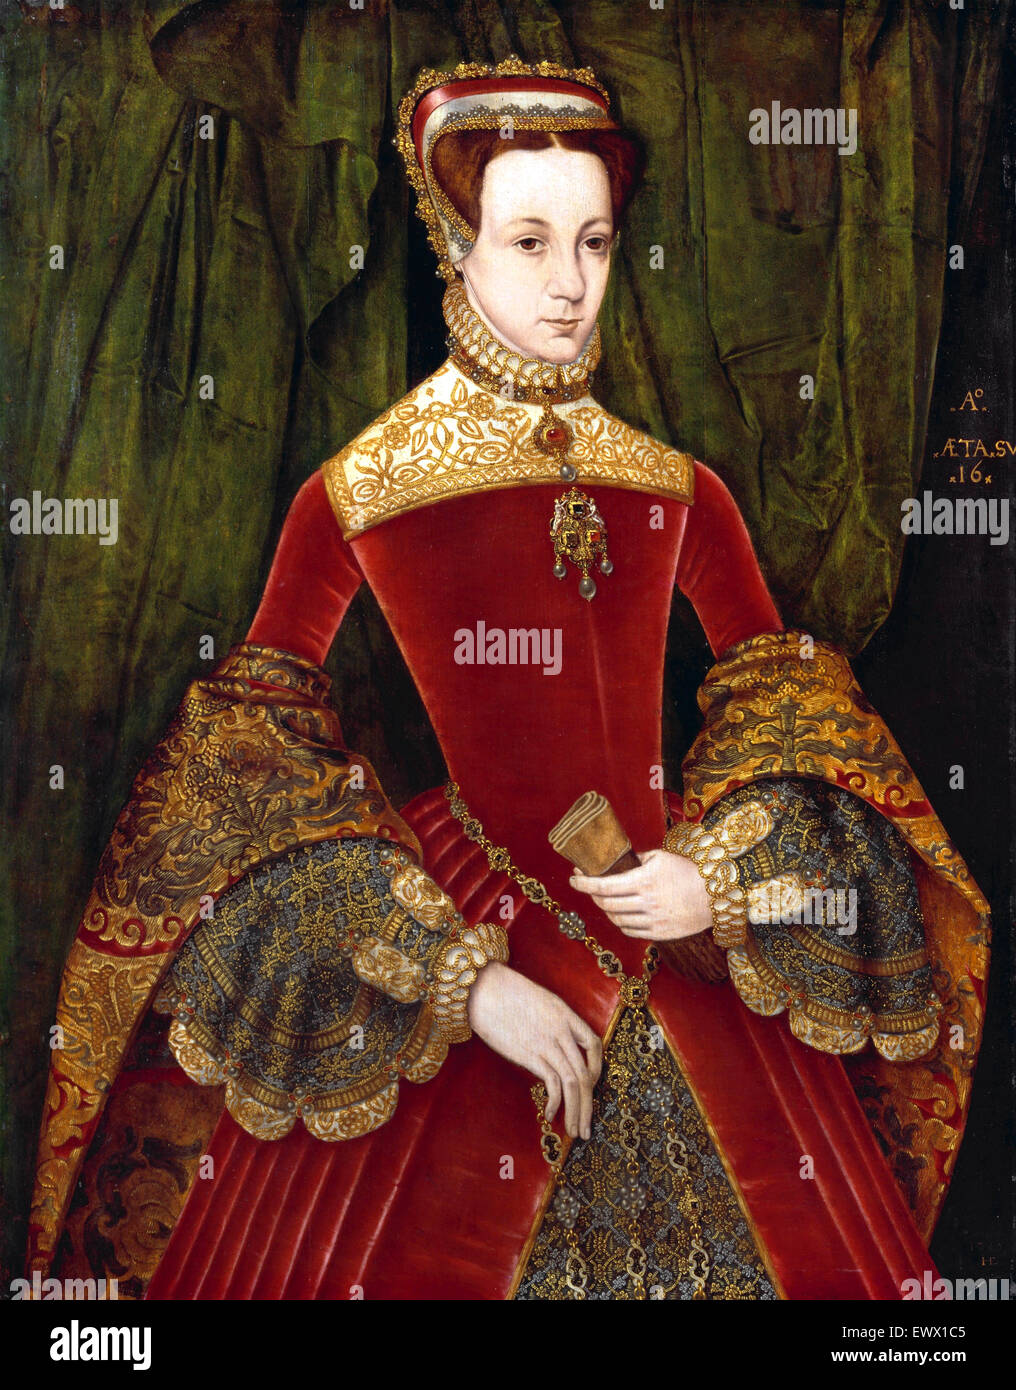 Hans Eworth, Portrait of a Woman, Aged Sixteen, Previously Identified as Mary Fitzalan, Duchess of Norfolk, 1565. - Stock Image